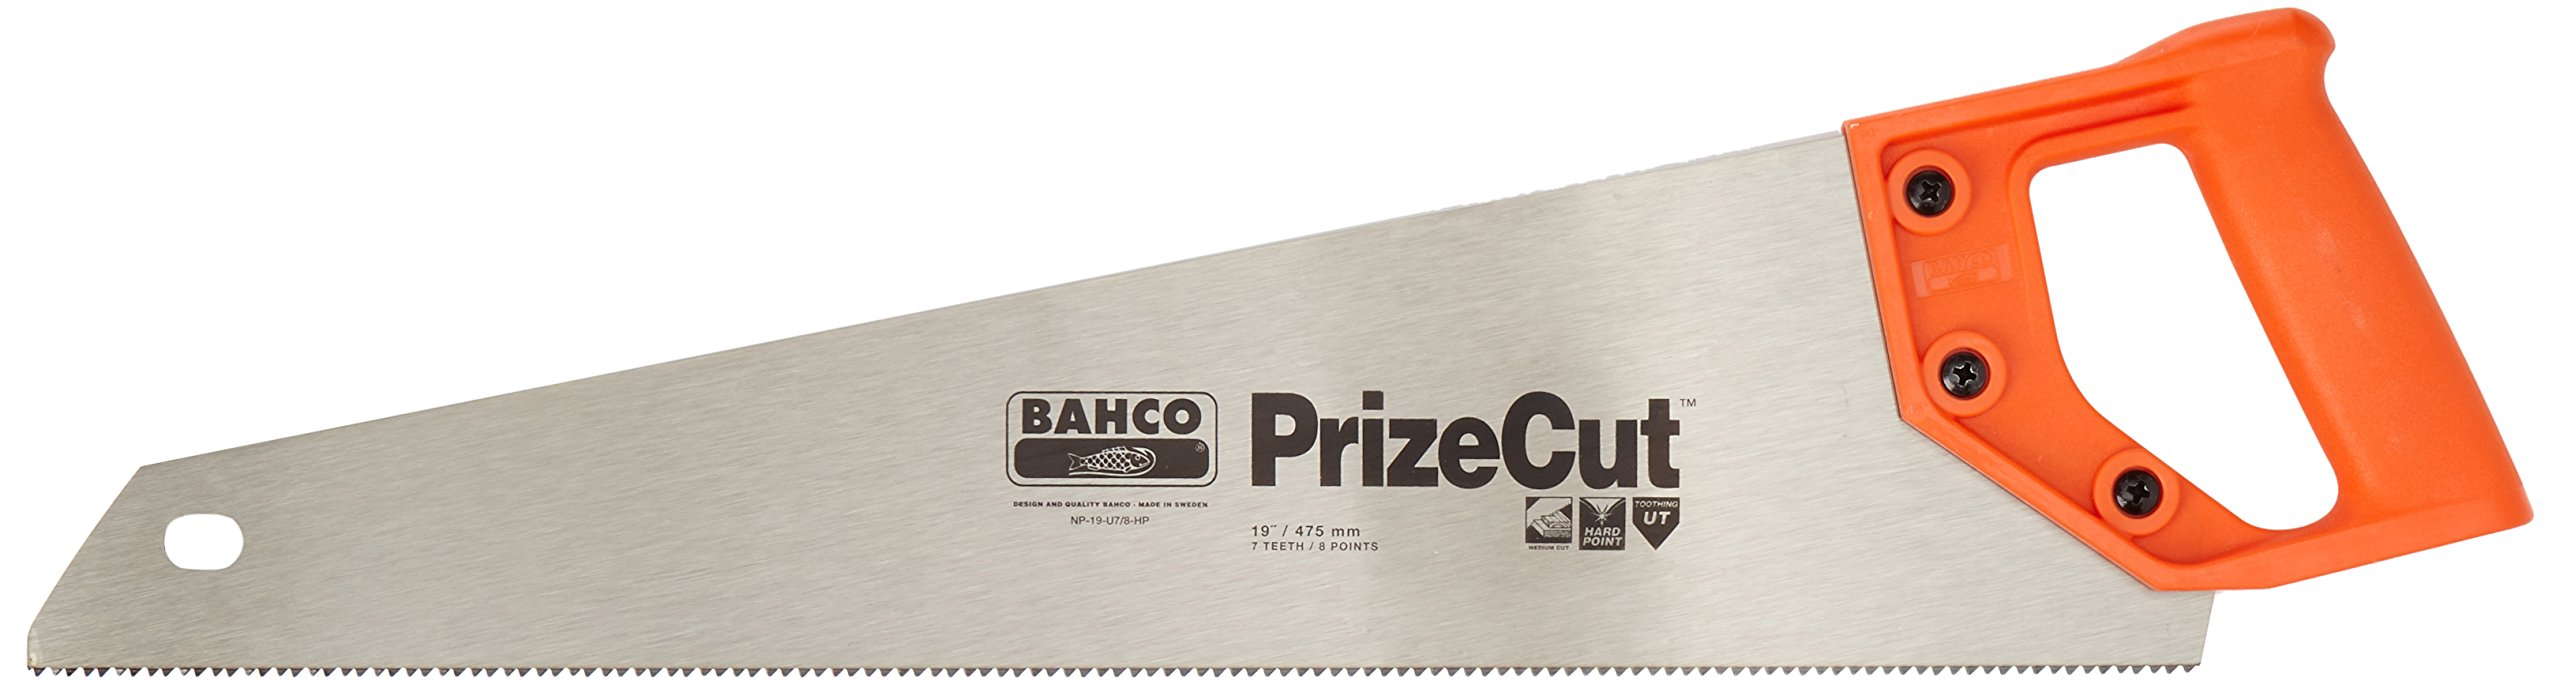 Bahco Np-19-10P 19-Inch Prizecut Handsaw